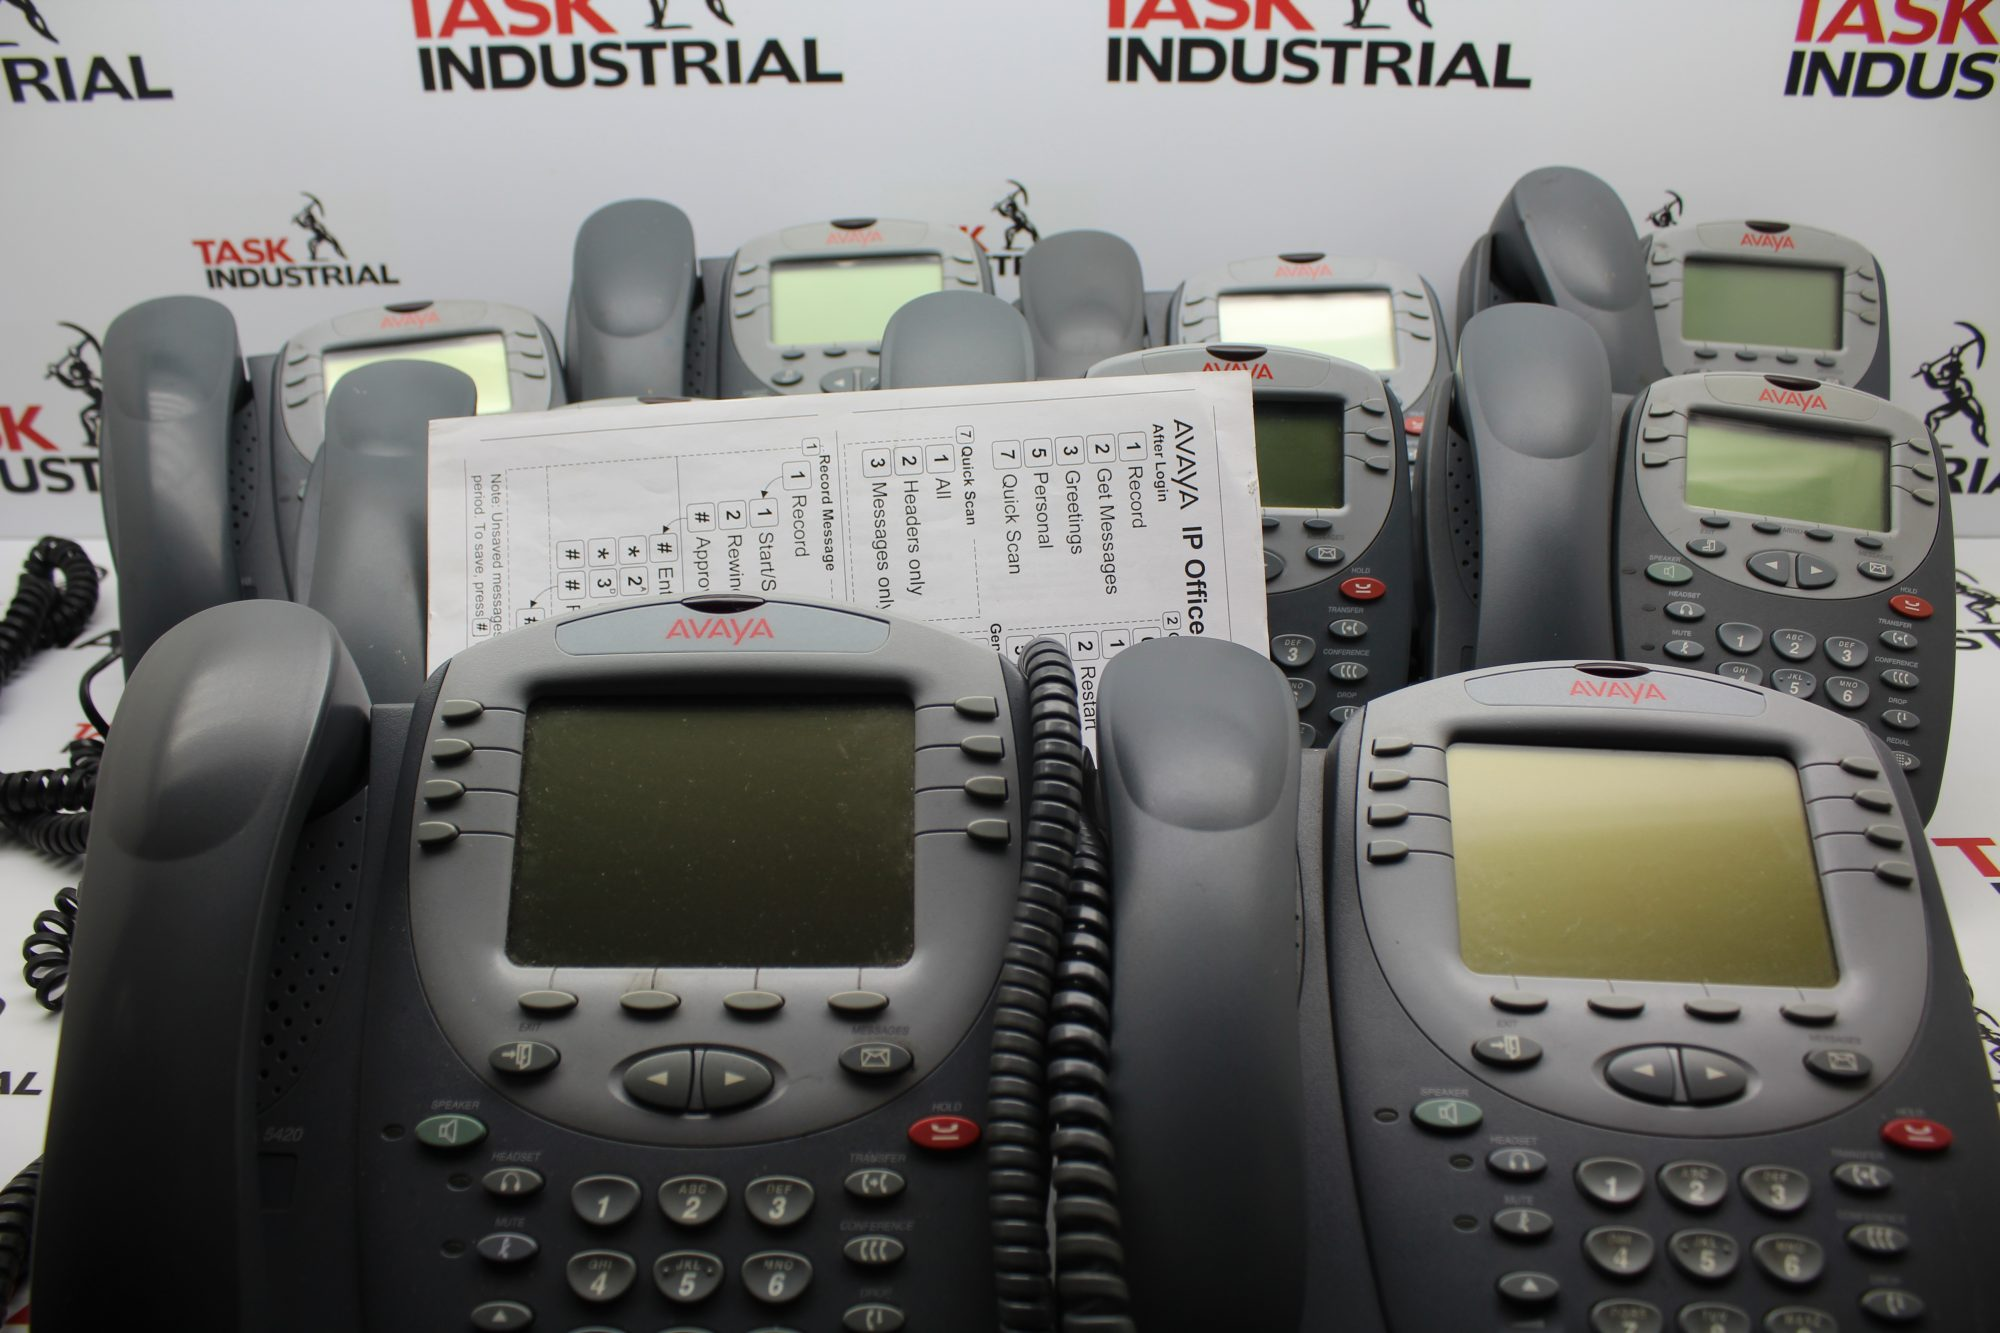 Avaya Ip Office 406400 Business Phone System W Voice Mail 9